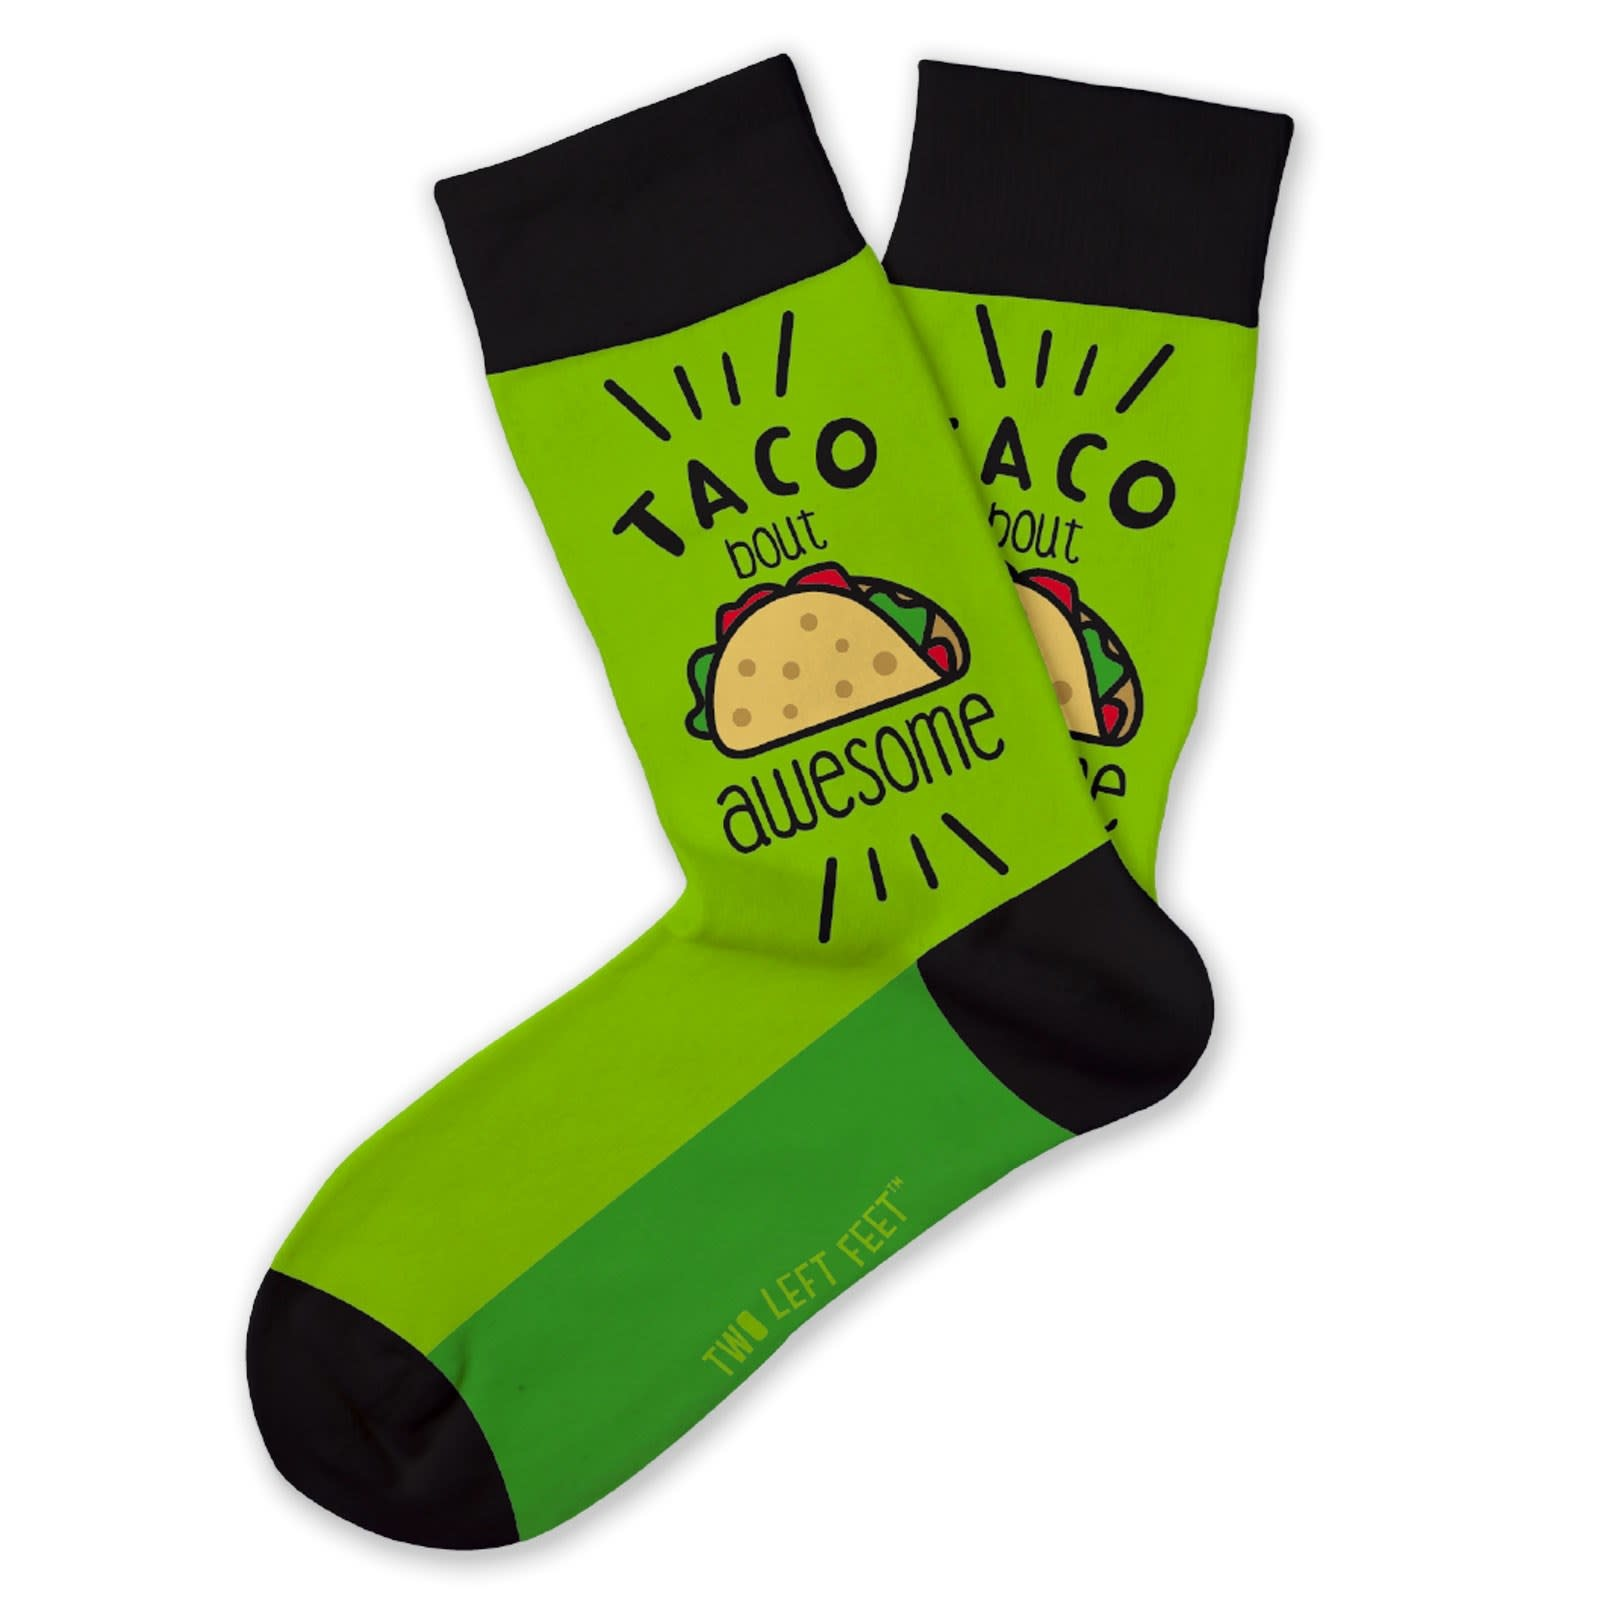 DM MERCHANDISING Taco Bout Awesome Socks - Ages 7-10